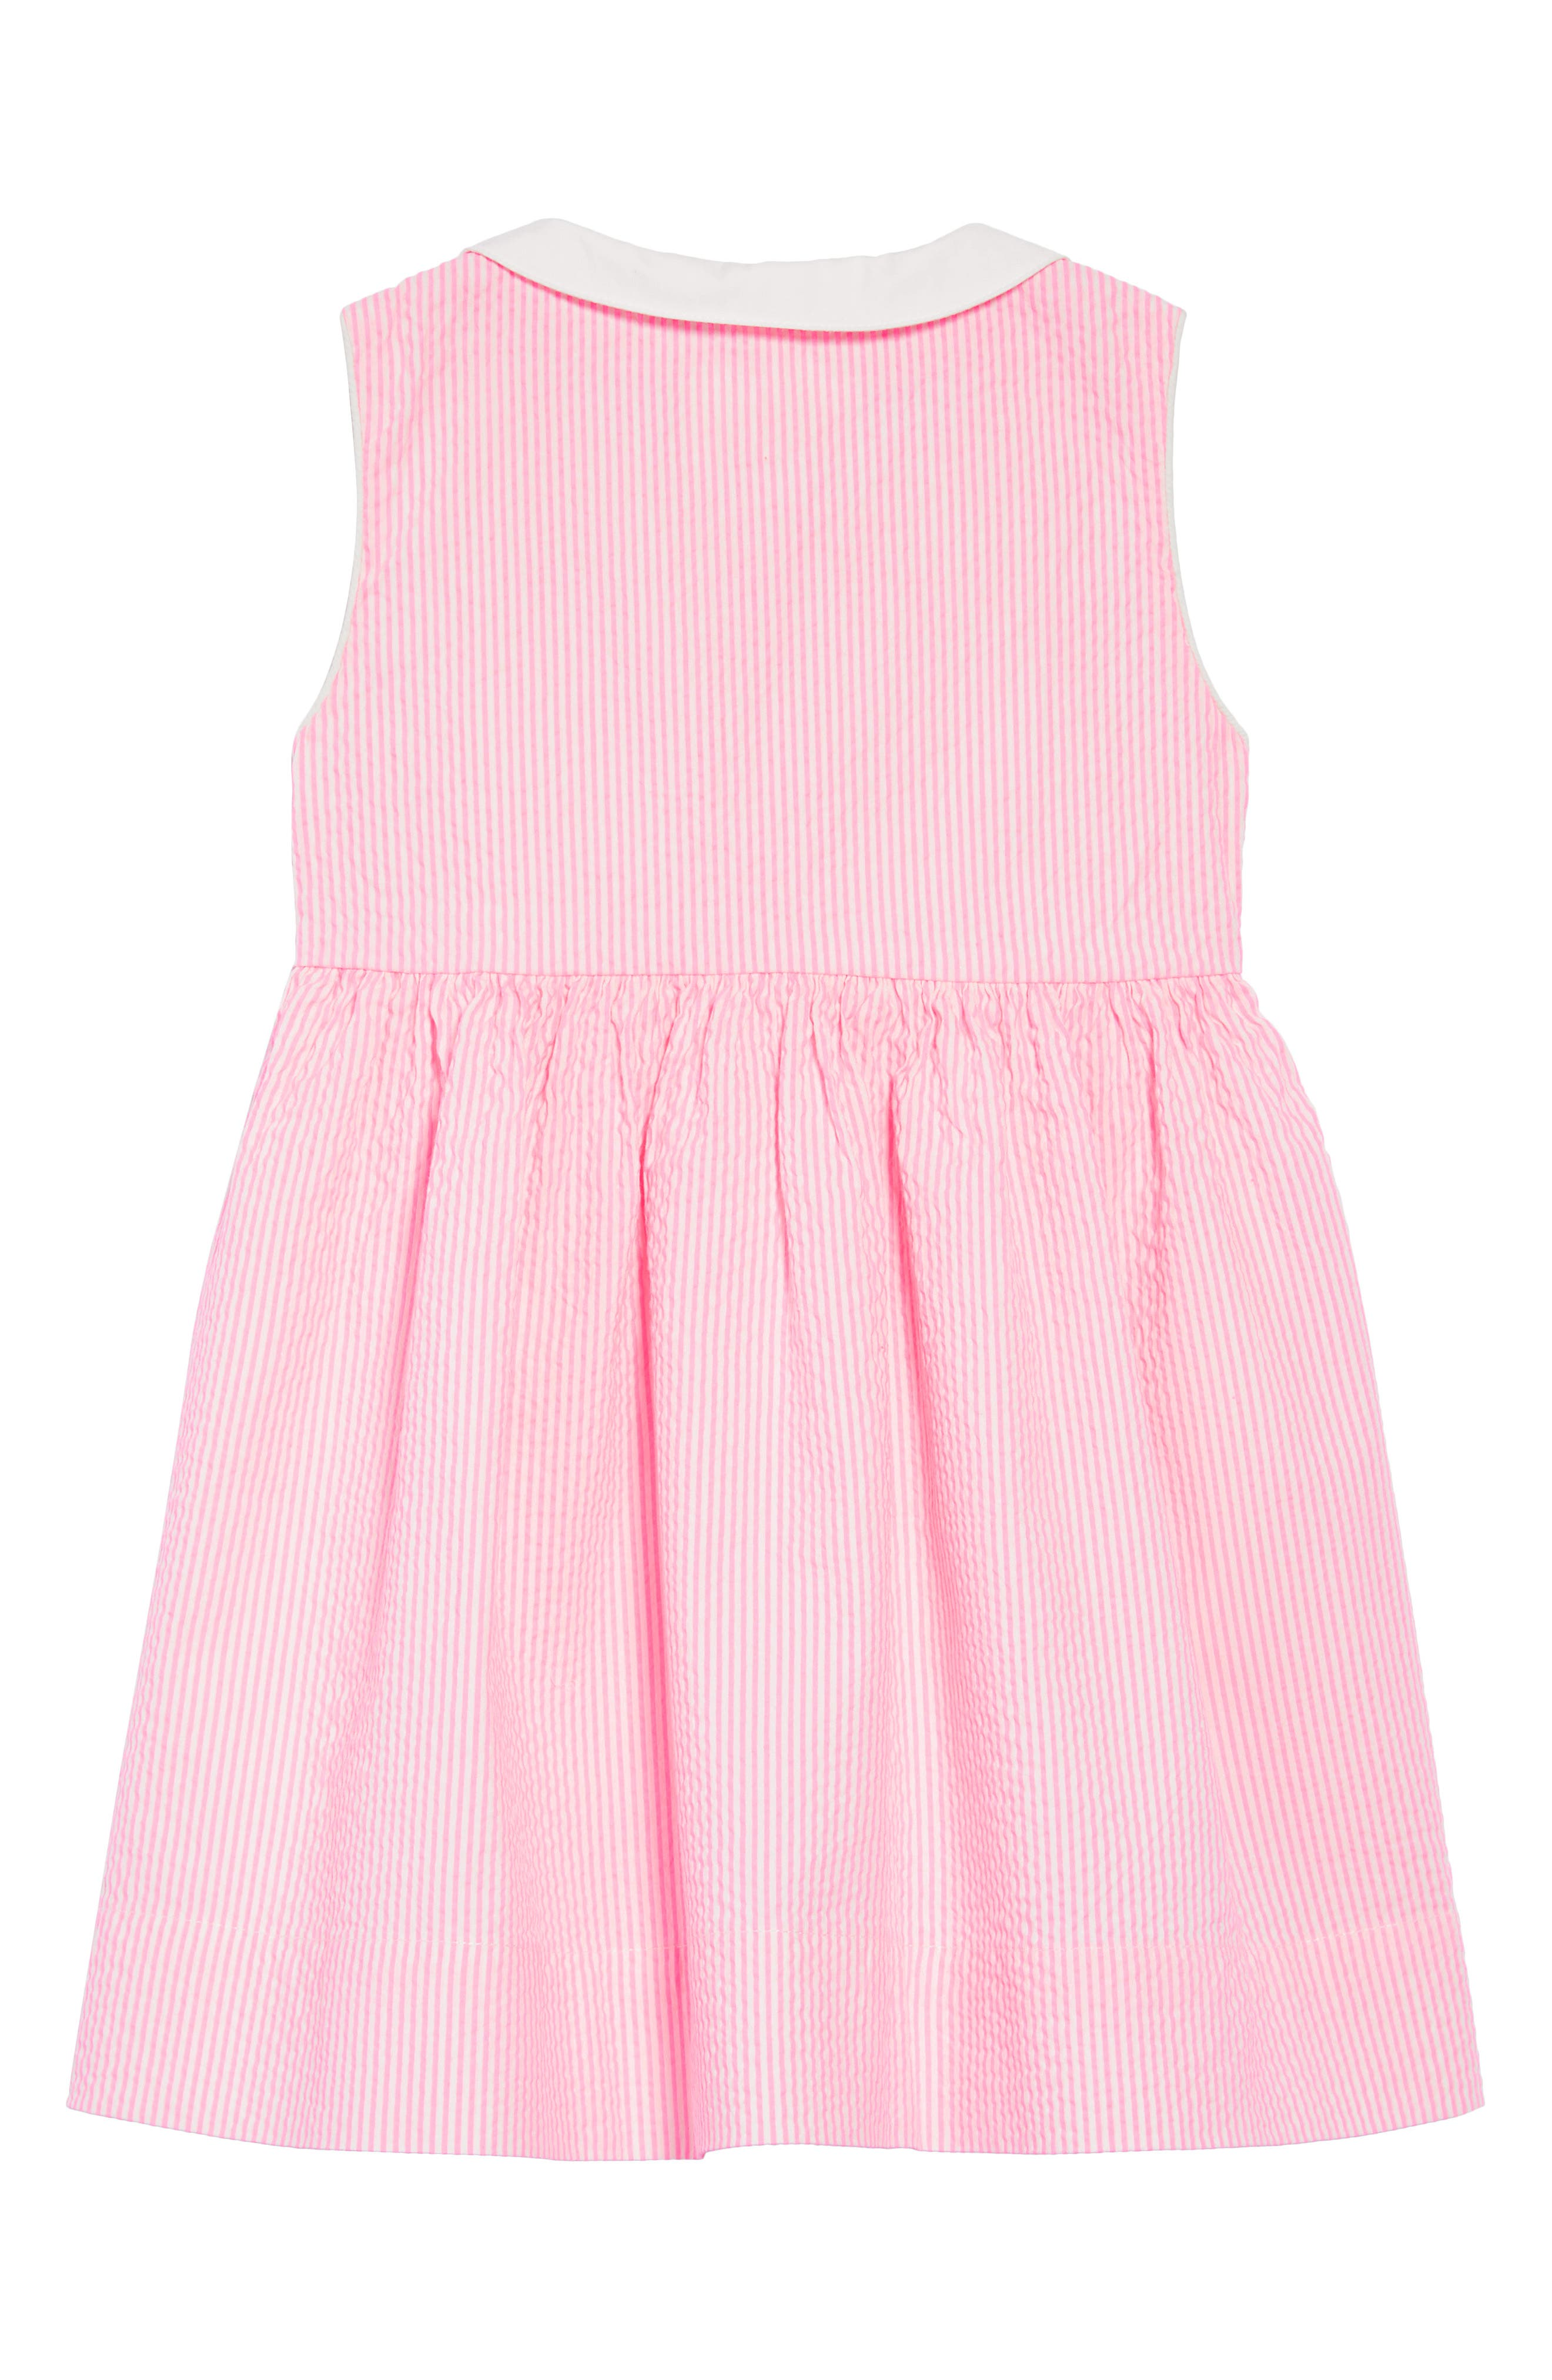 Nostalgic Collar Dress,                             Alternate thumbnail 2, color,                             Knockout Pink